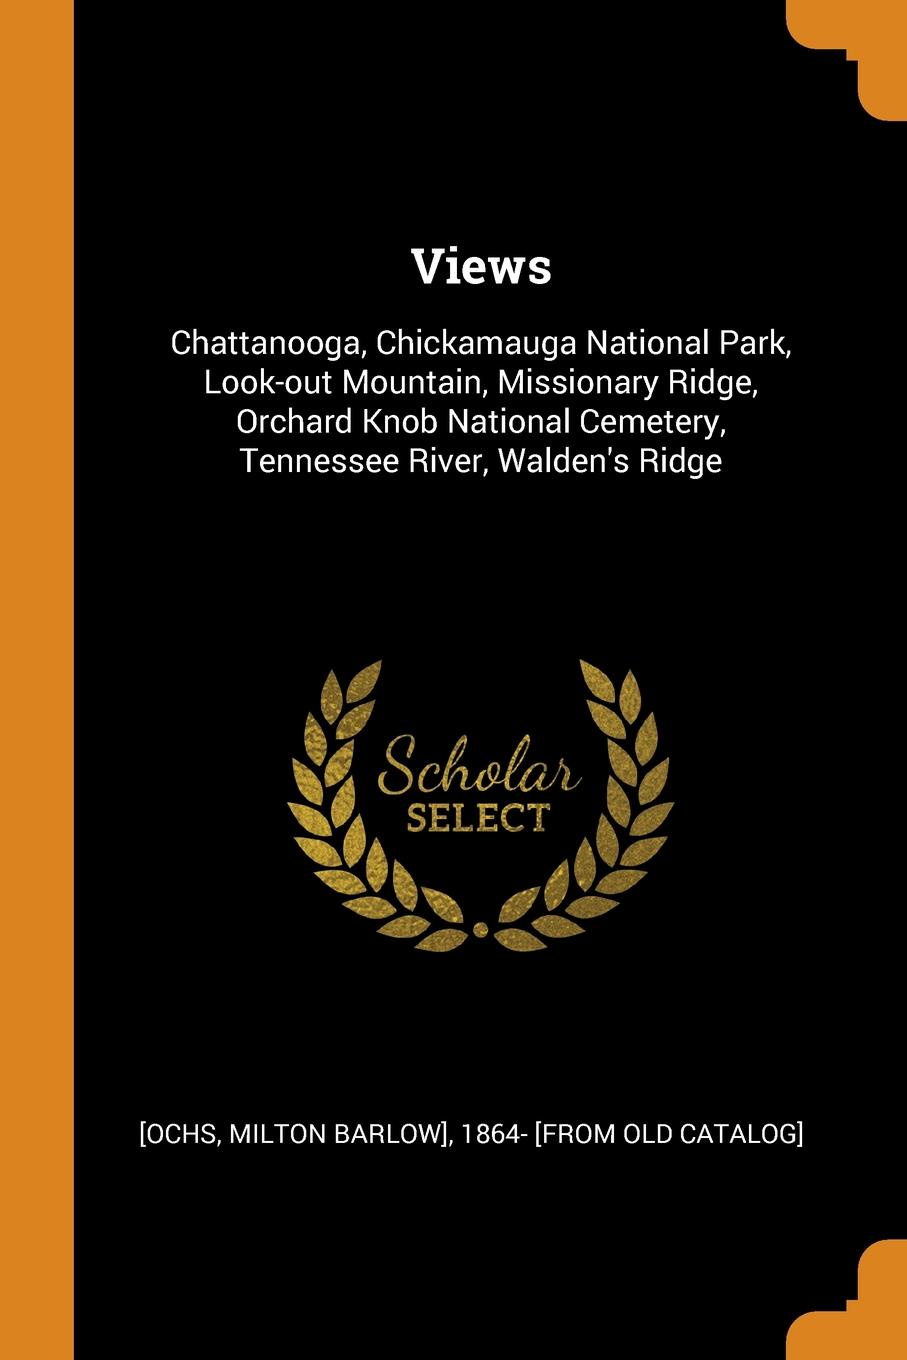 Views. Chattanooga, Chickamauga National Park, Look-out Mountain, Missionary Ridge, Orchard Knob National Cemetery, Tennessee River, Walden.s Ridge